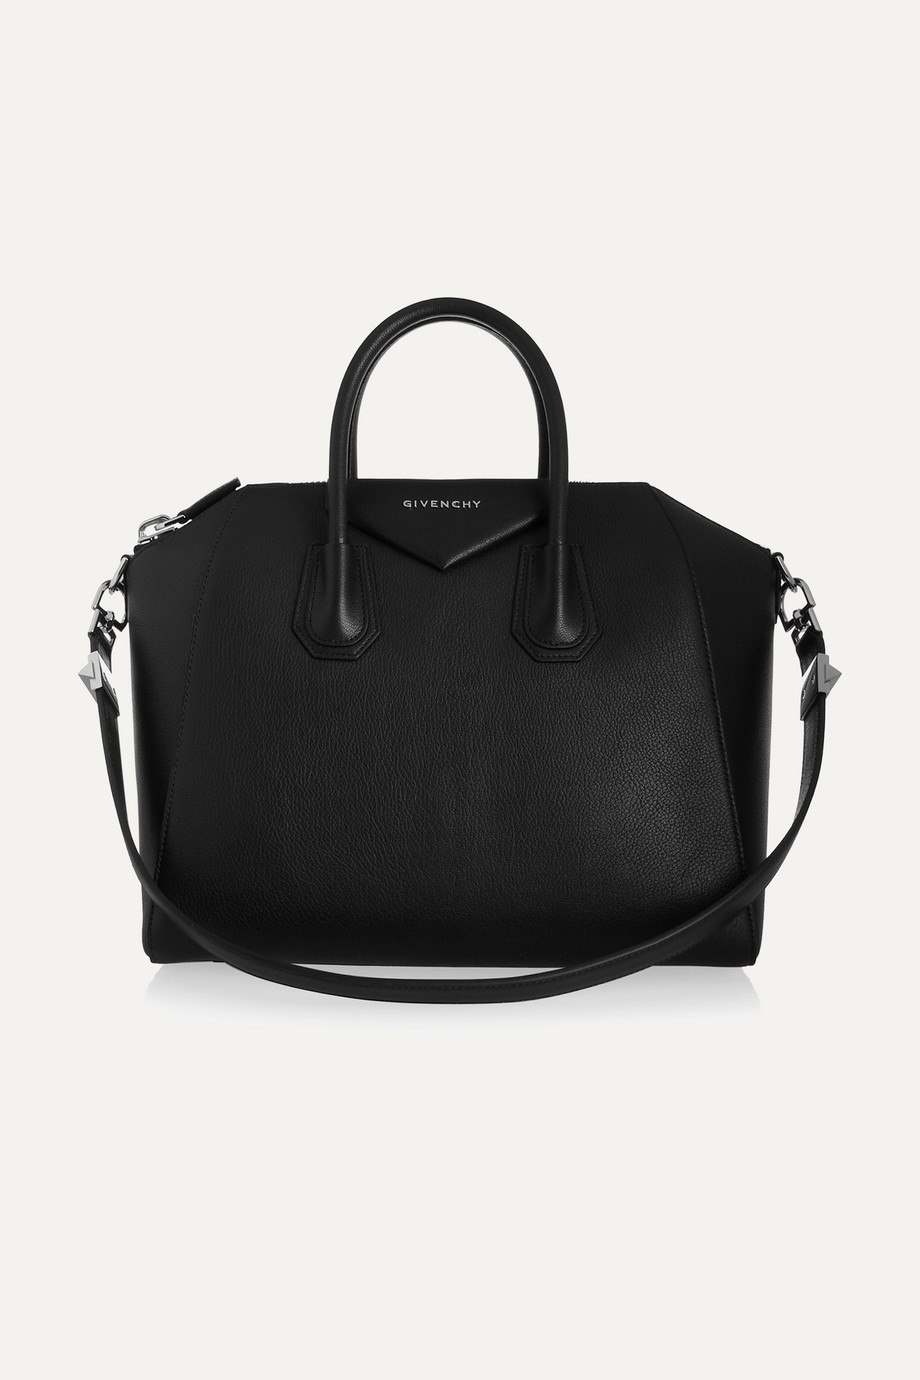 GIVENCHY Antigona medium textured-leather tote